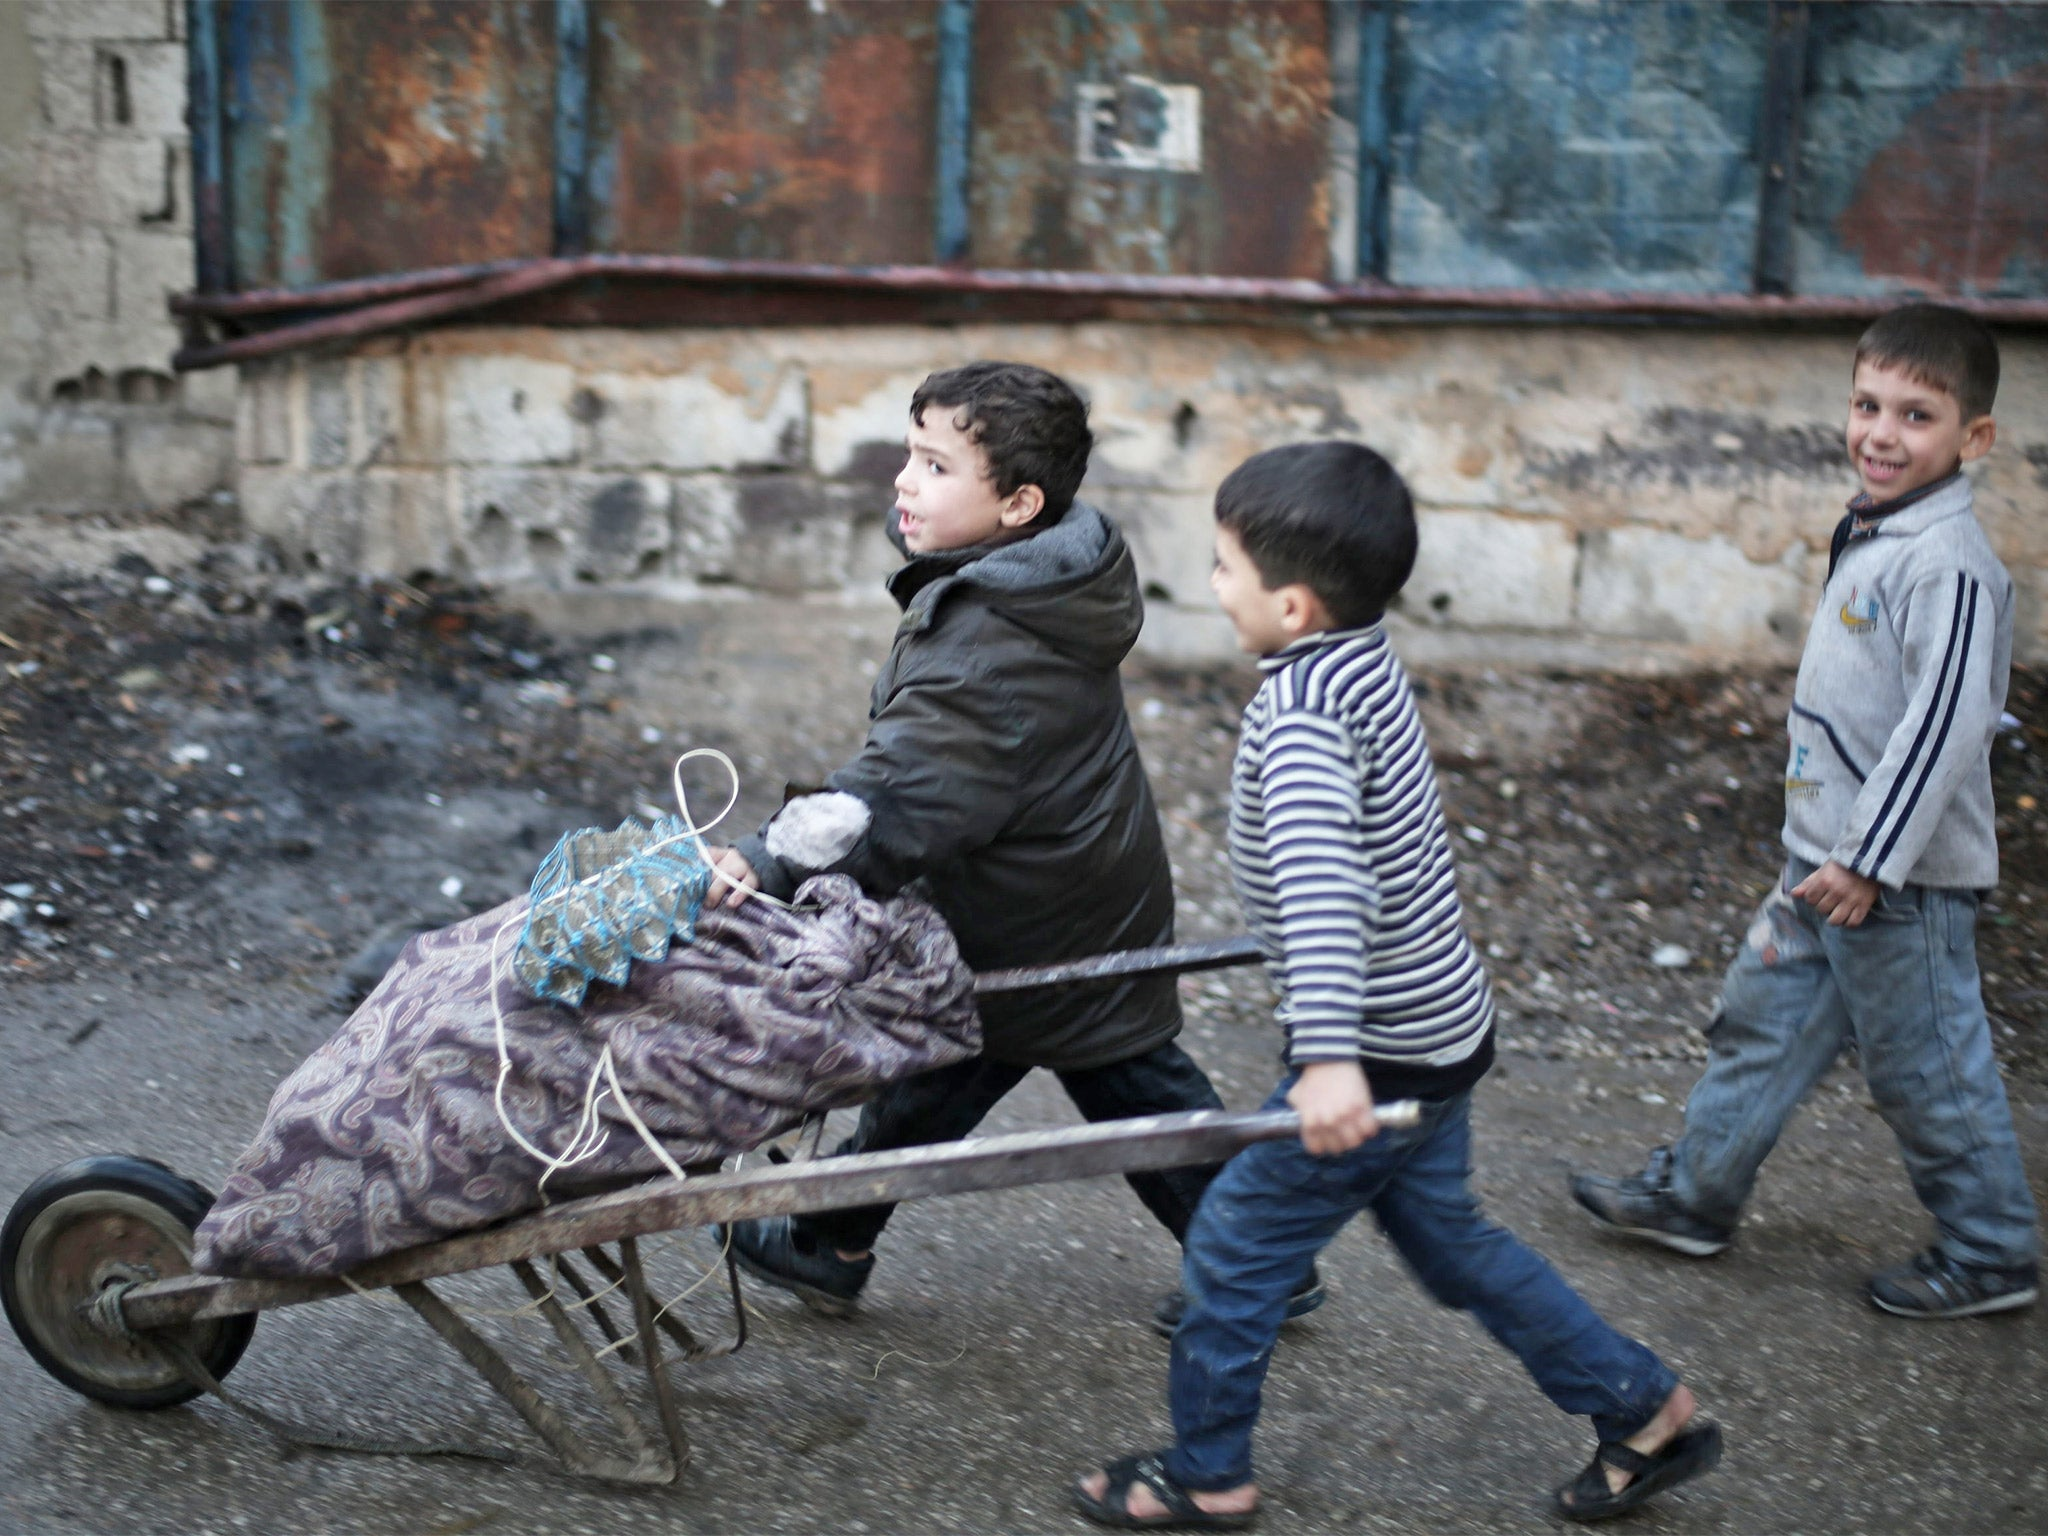 Syria Civil War Dying Children Being Forced To Eat